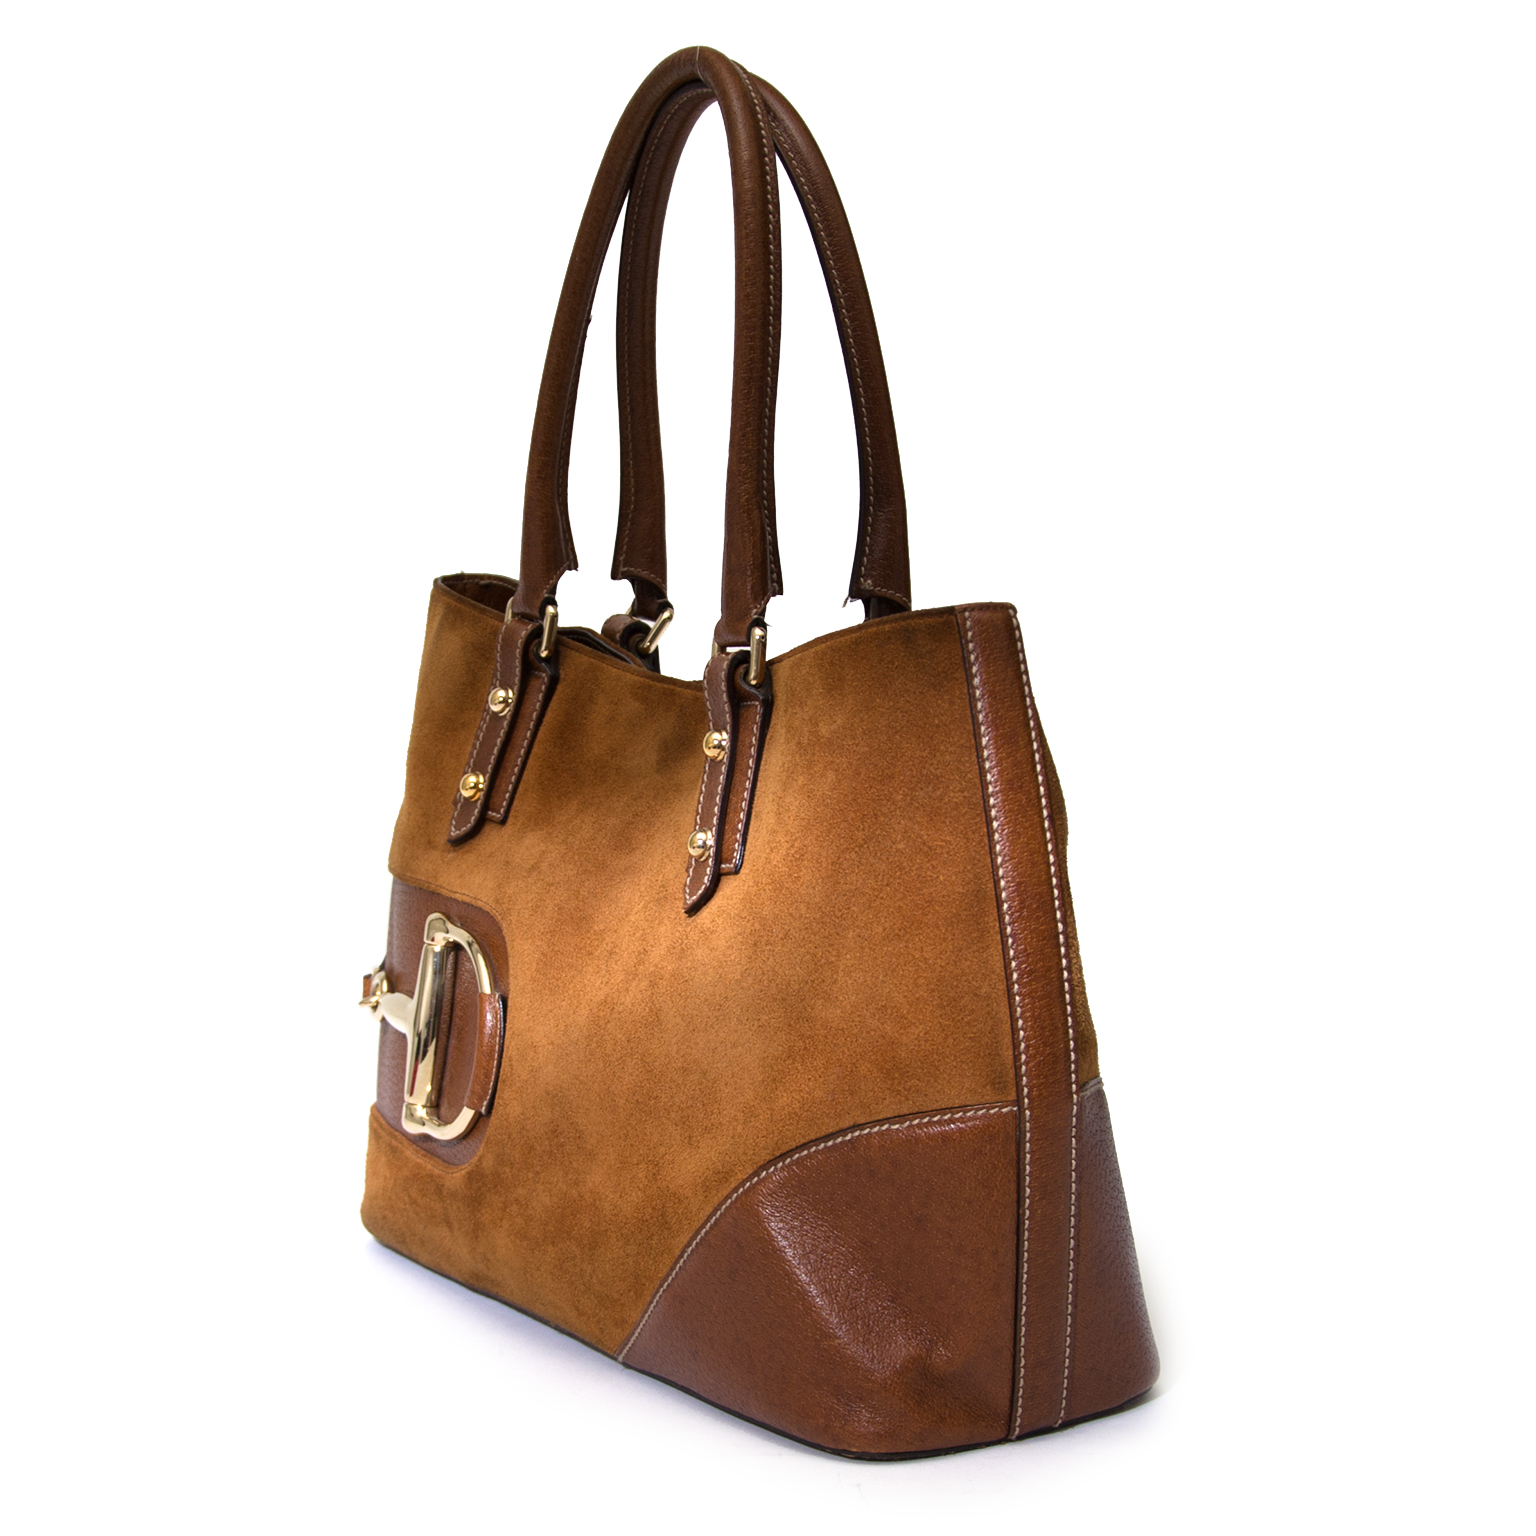 shop safe online at the best price Gucci brown suede horsebit like new webshop www.labellov.com